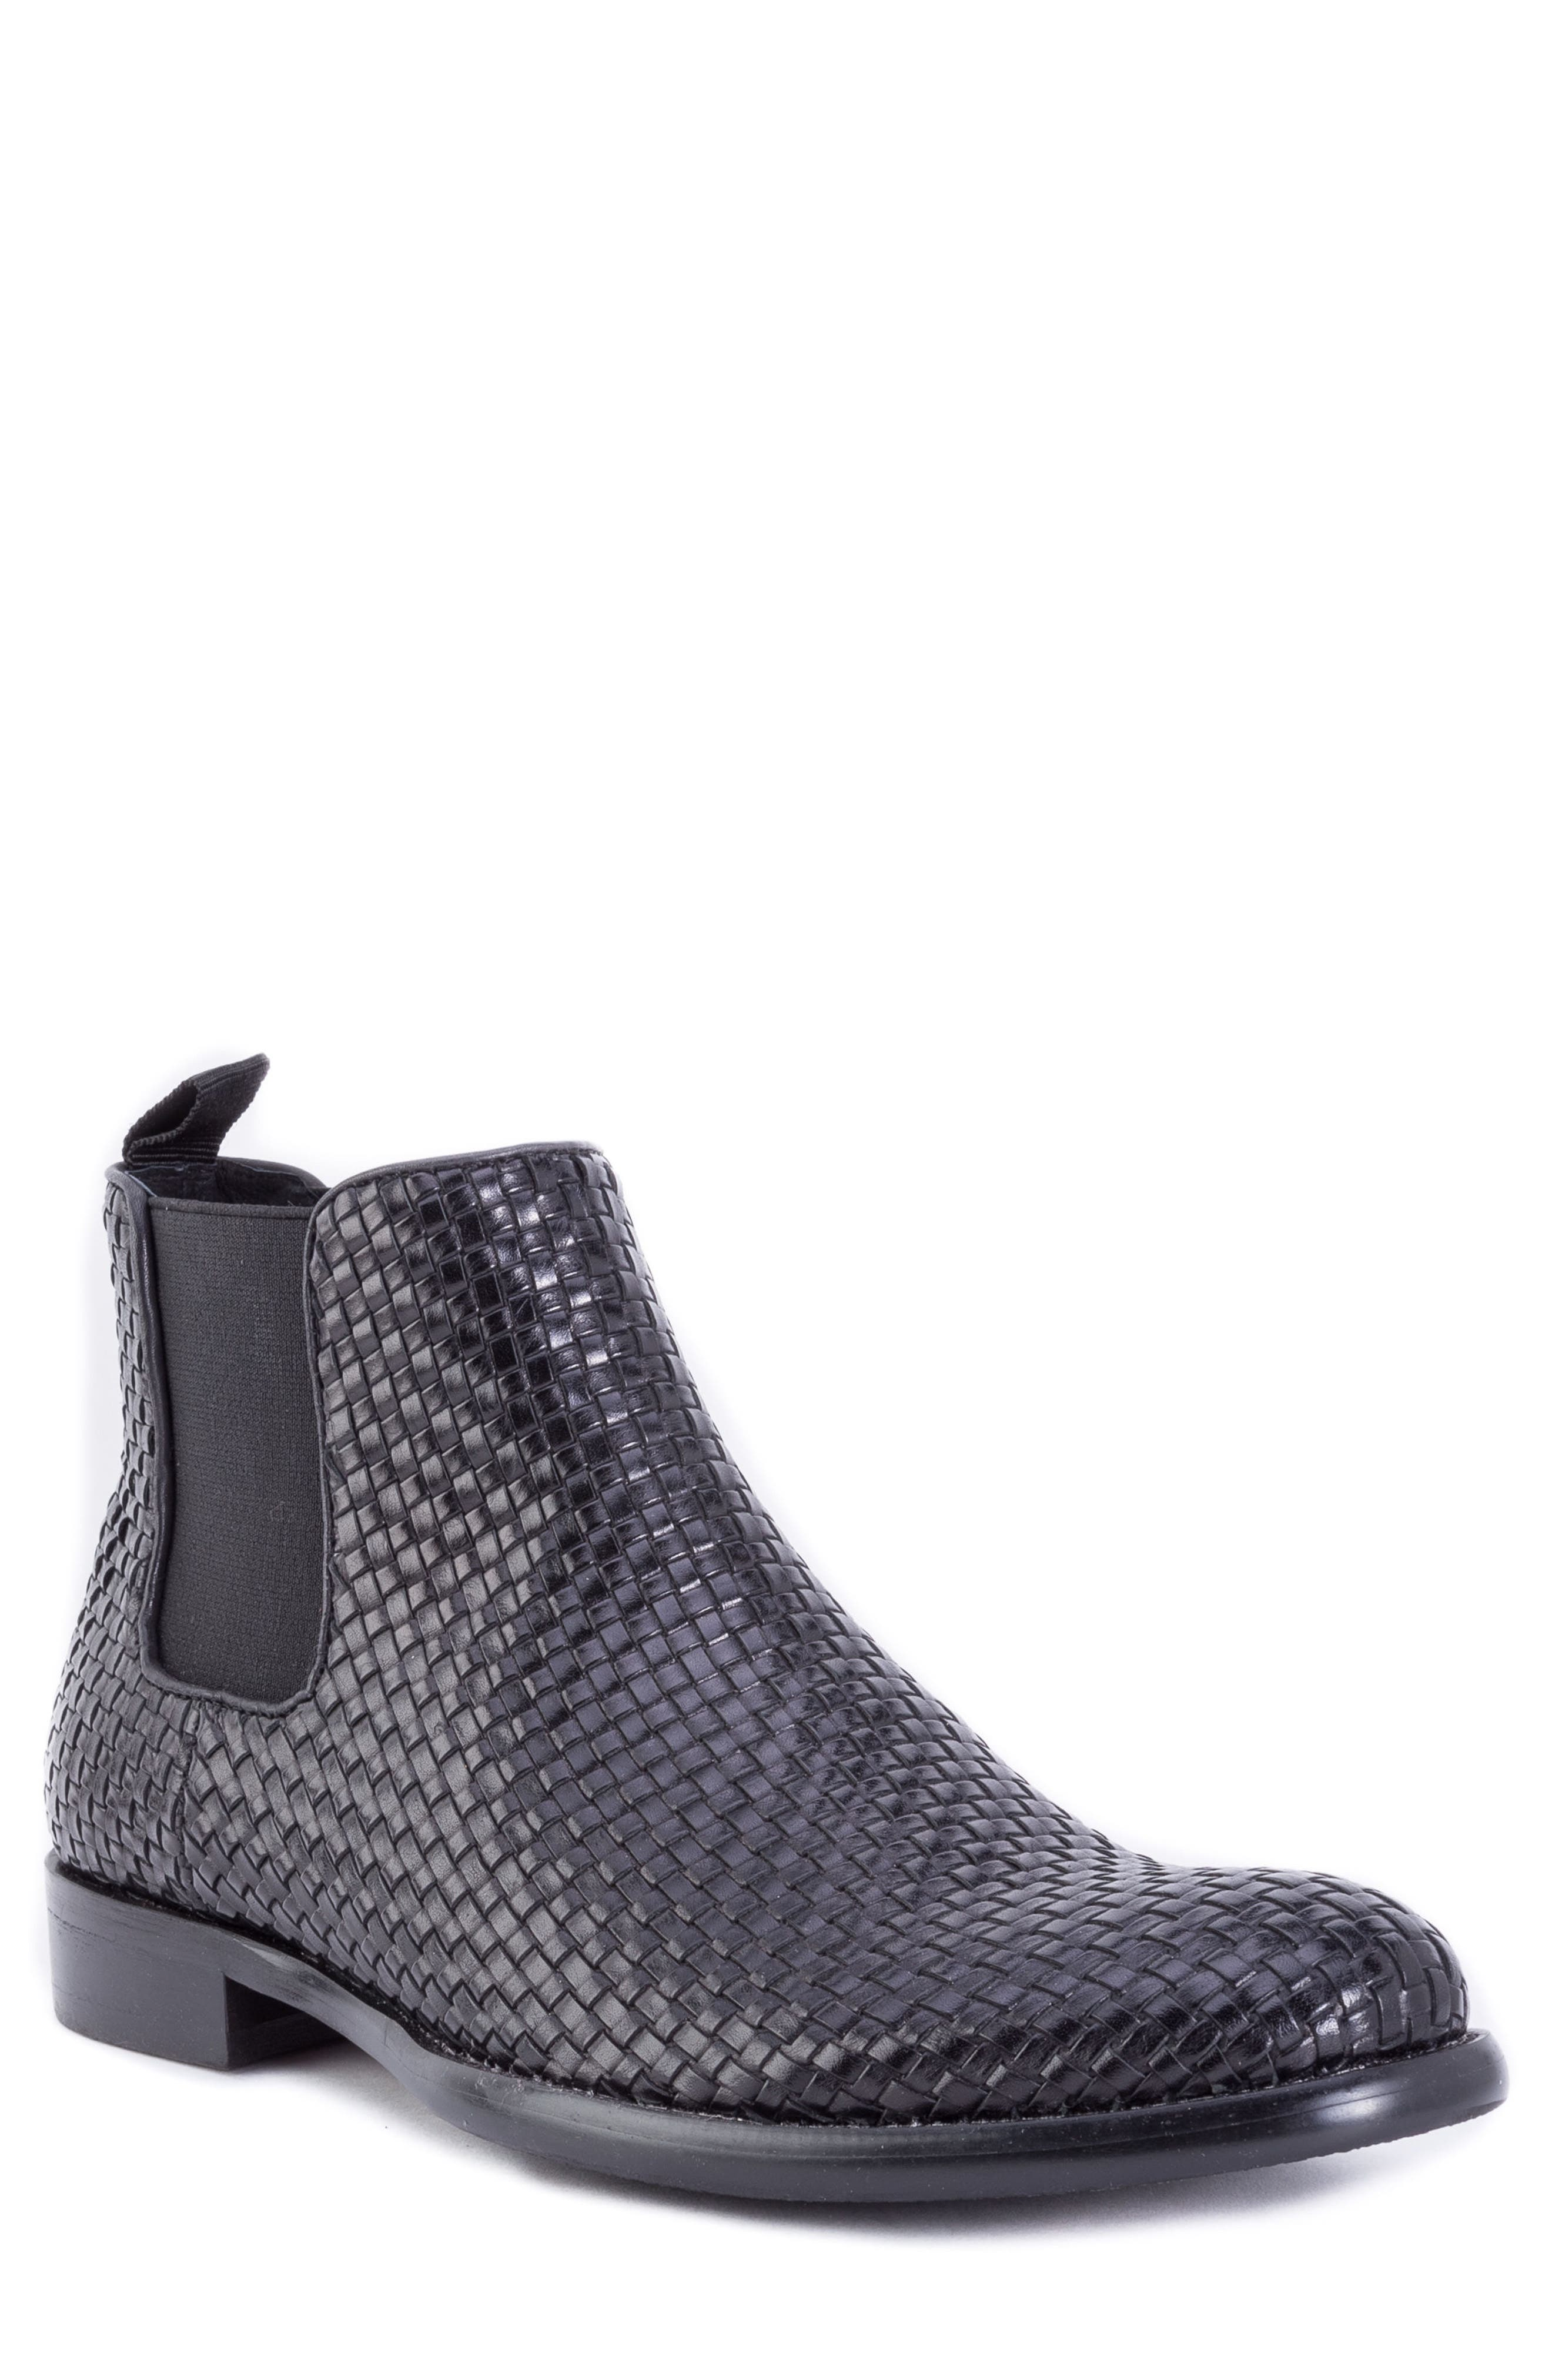 Woodward Woven Chelsea Boot,                         Main,                         color, BLACK LEATHER